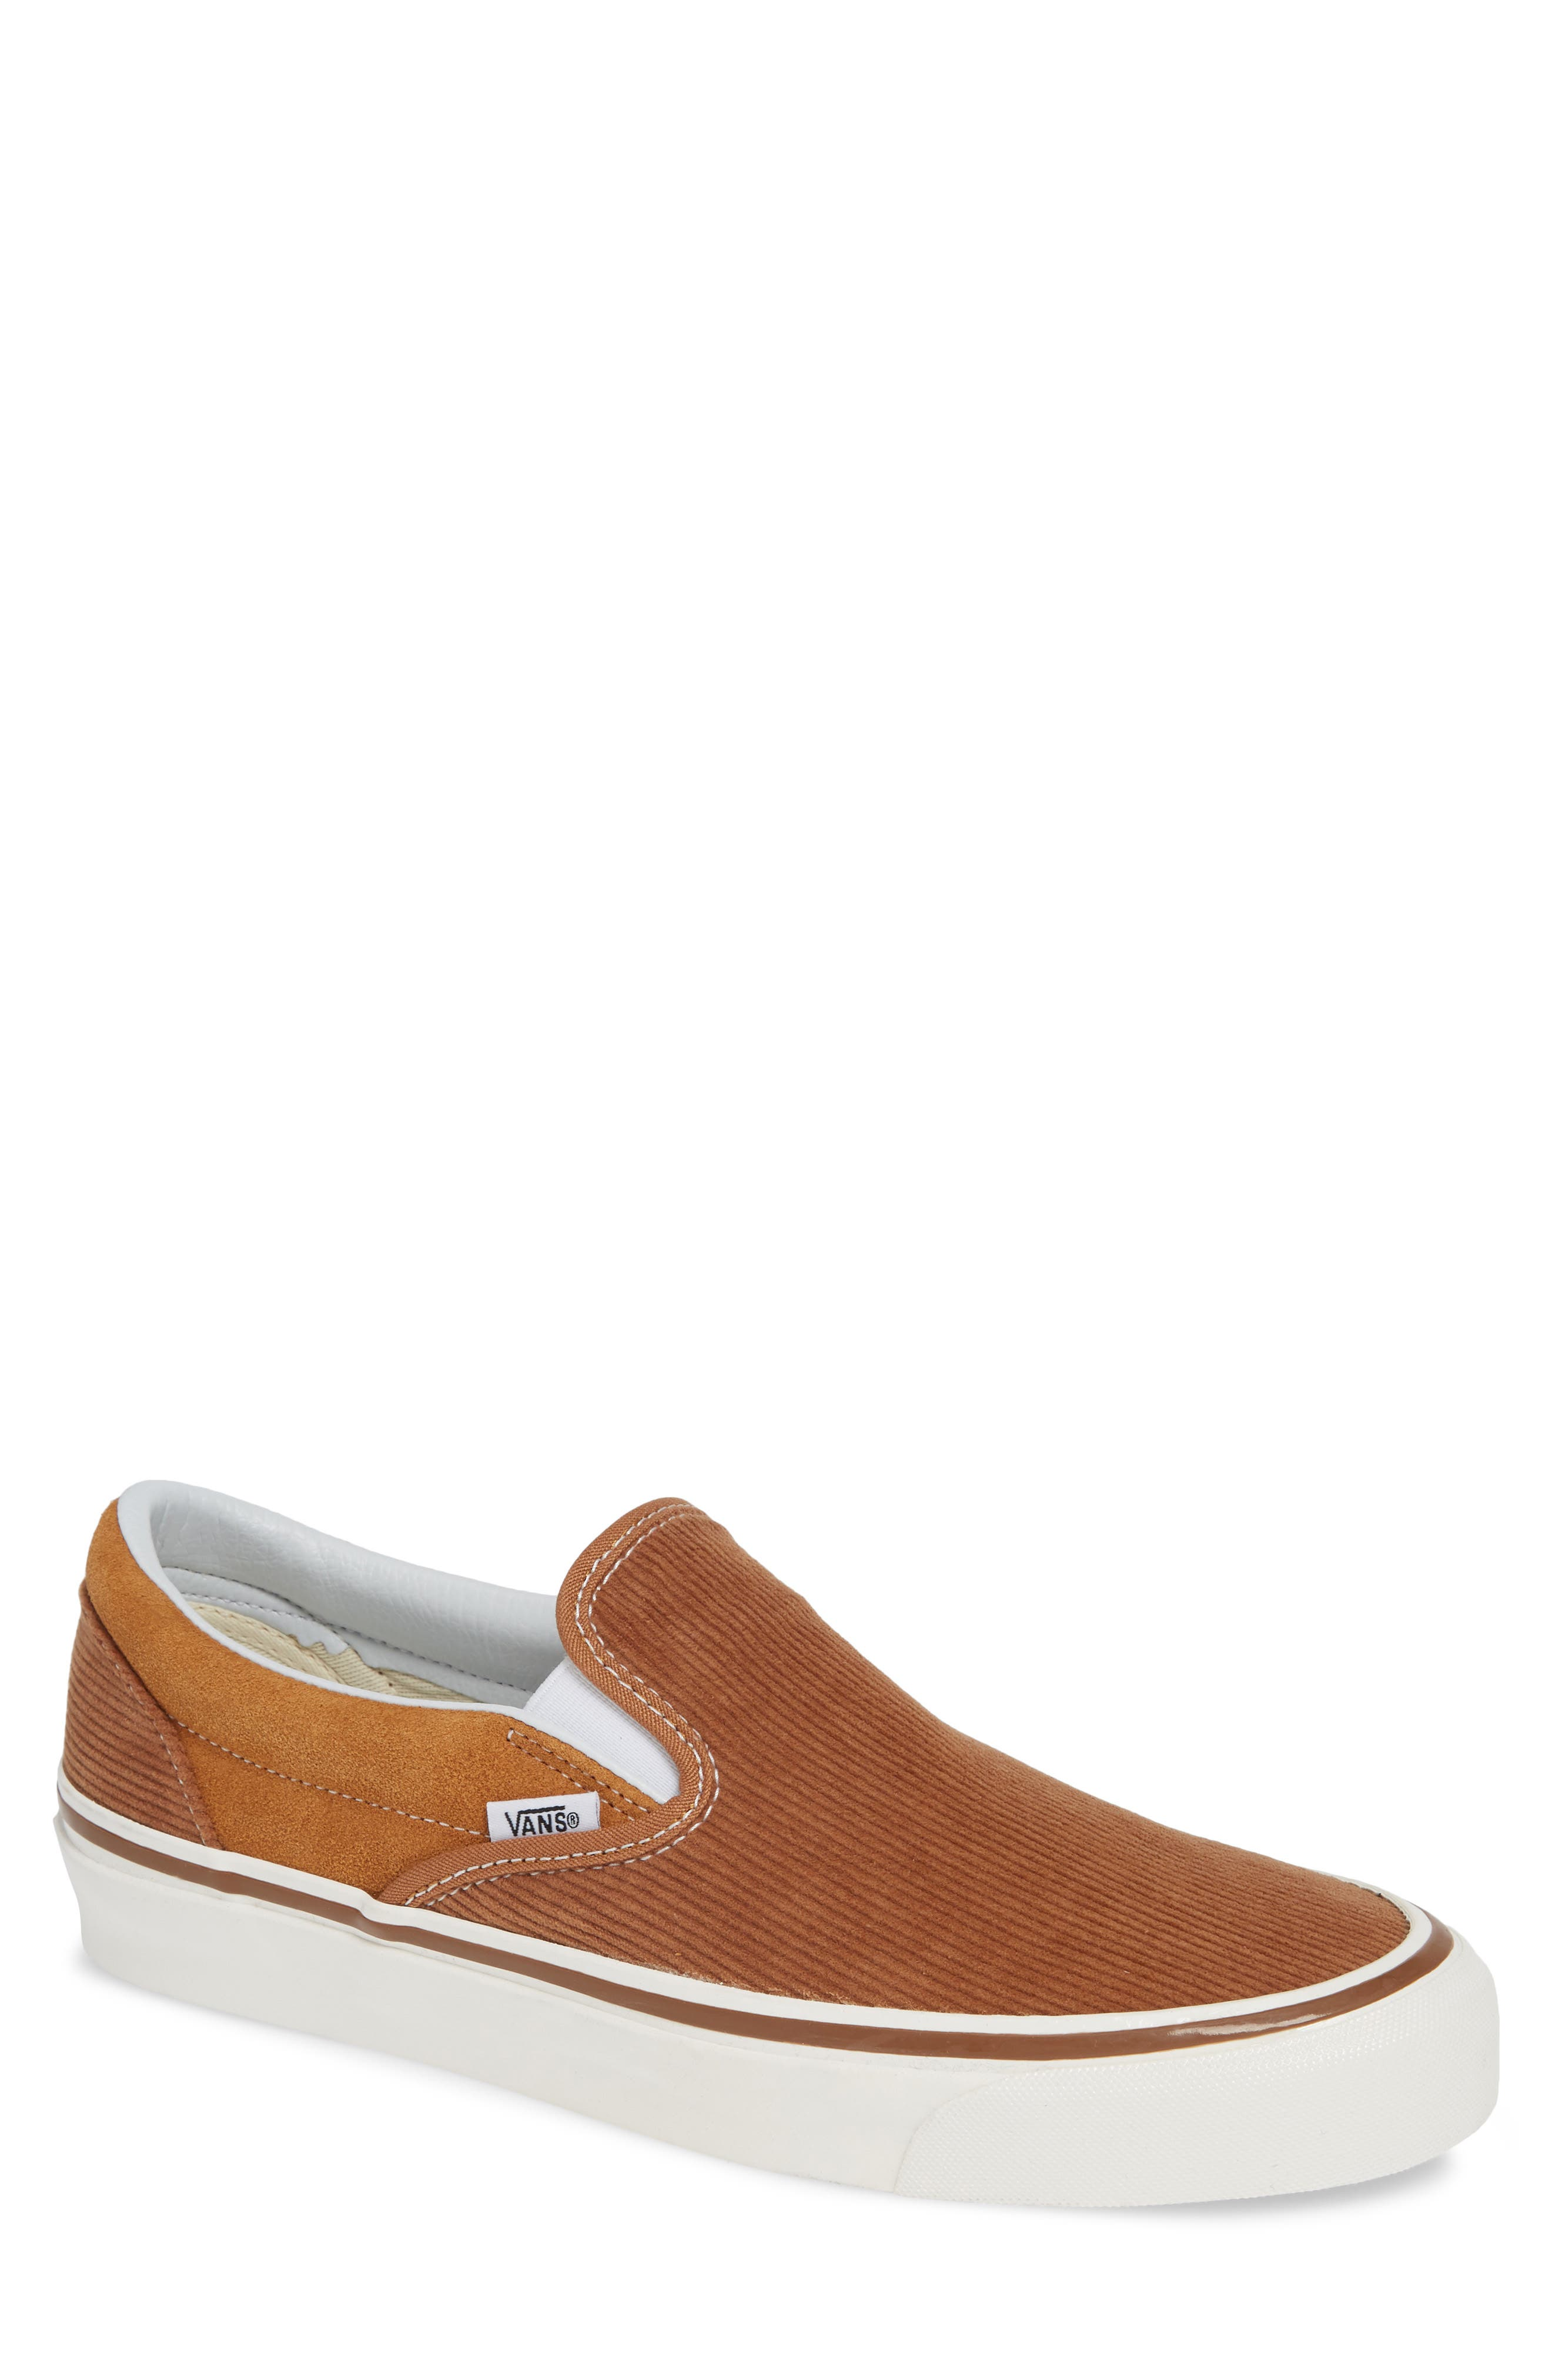 Classic 98 DX Slip-On Sneaker,                             Main thumbnail 1, color,                             BROWN/ CORDUROY